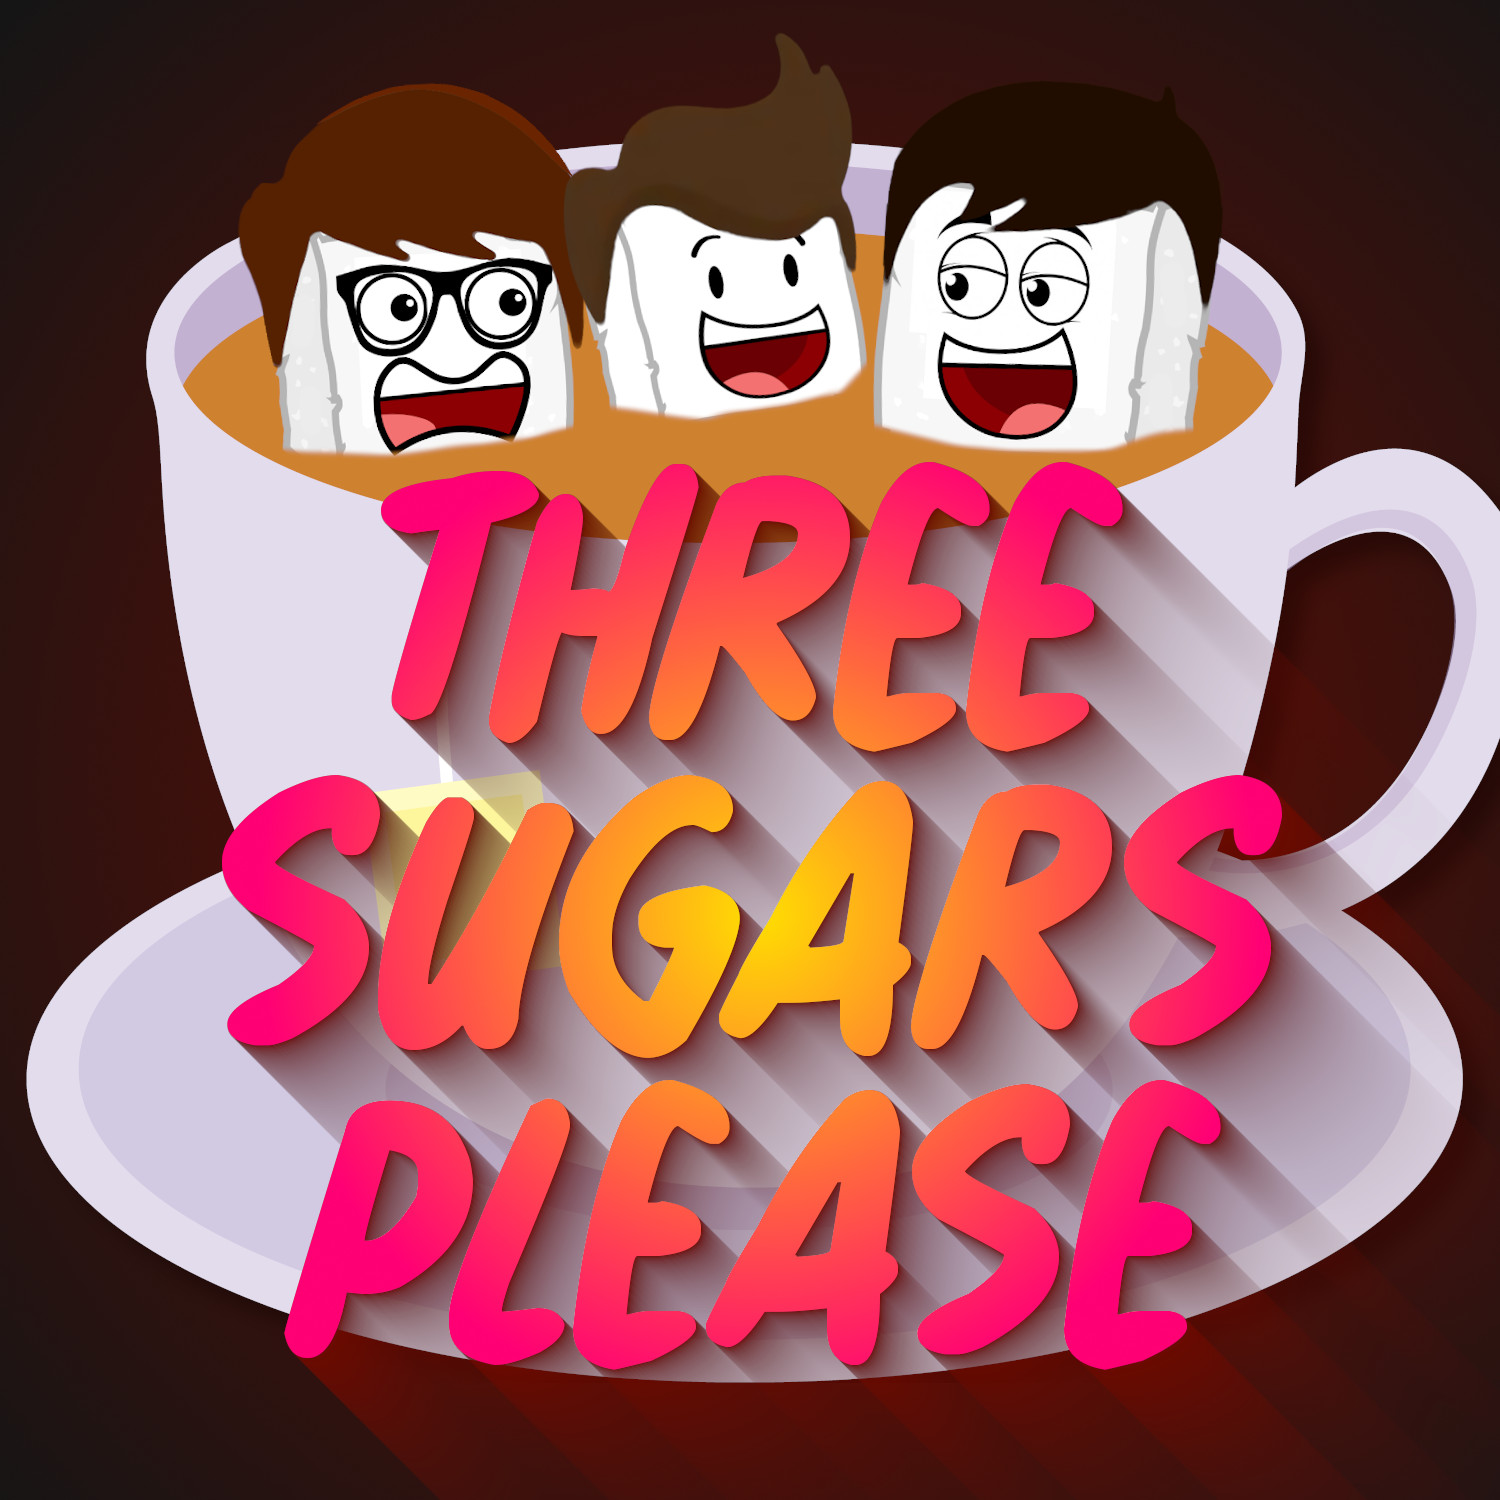 Allergies, smearers and self-driving cars | Three sugars please episode 4